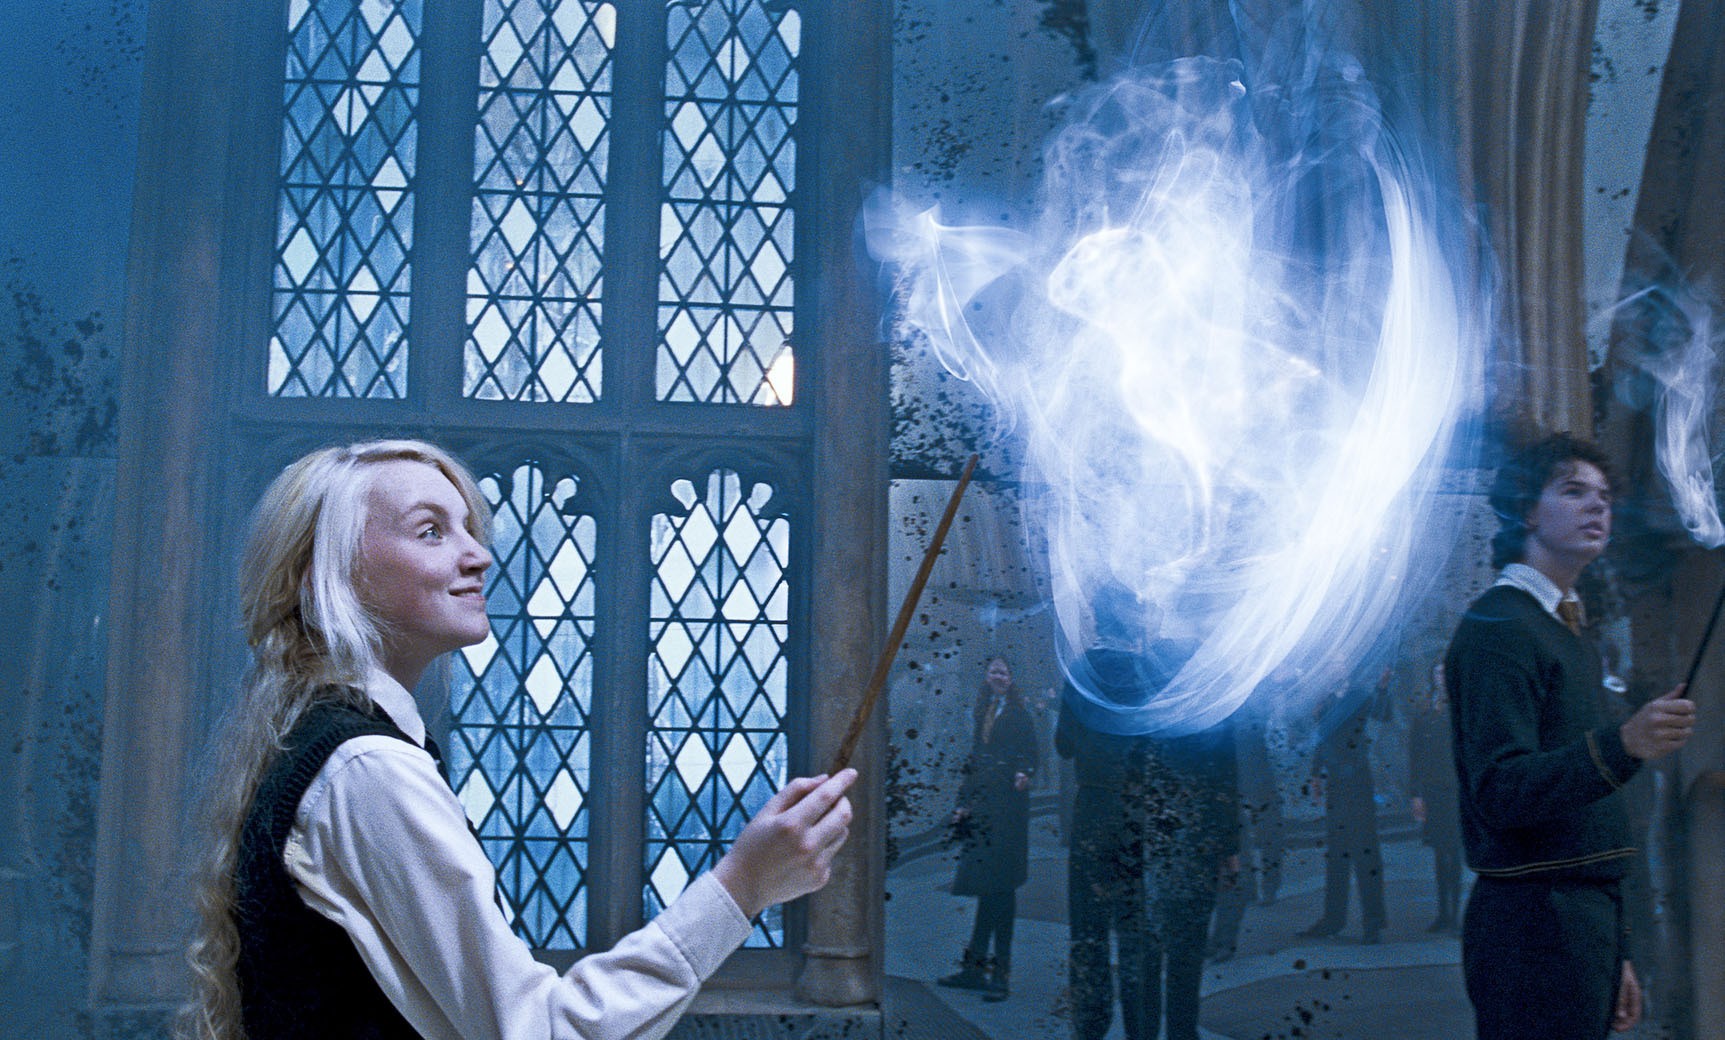 Now that you've found your Patronus, celebrate it in this crazy classy way